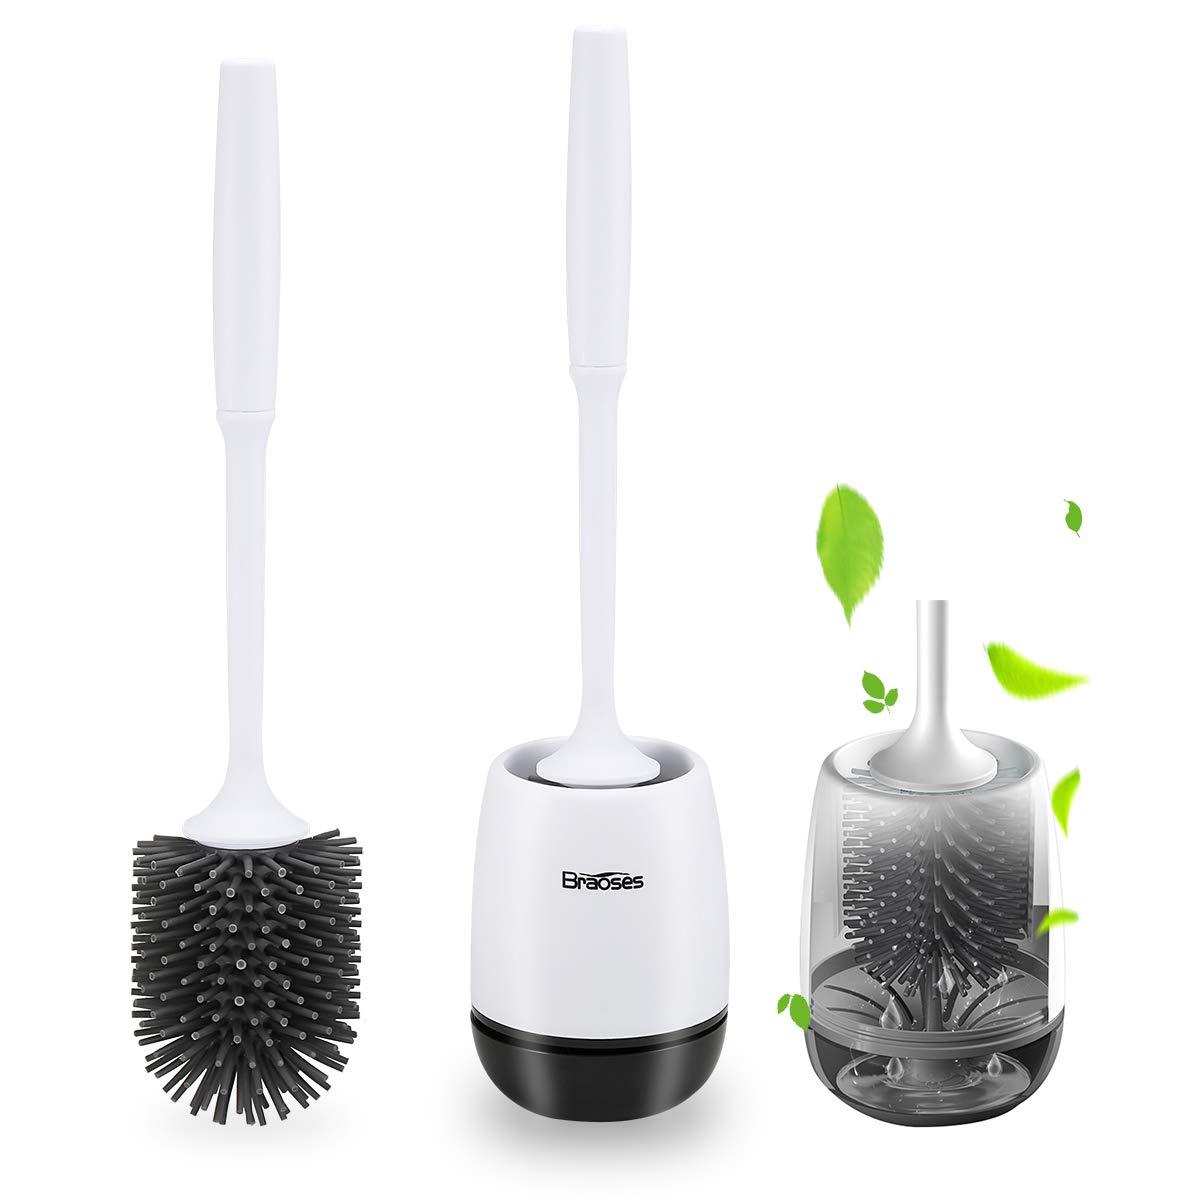 Braoses Toilet Brush and Holder Set, Bathroom Toilet Bowl Cleaner Brush Set, Household Cleaning Brushes Kit, with Antislip Grip Handle, Hollow Suspension Drainage Holder, Floor Standing/Wall Mounted by Braoses